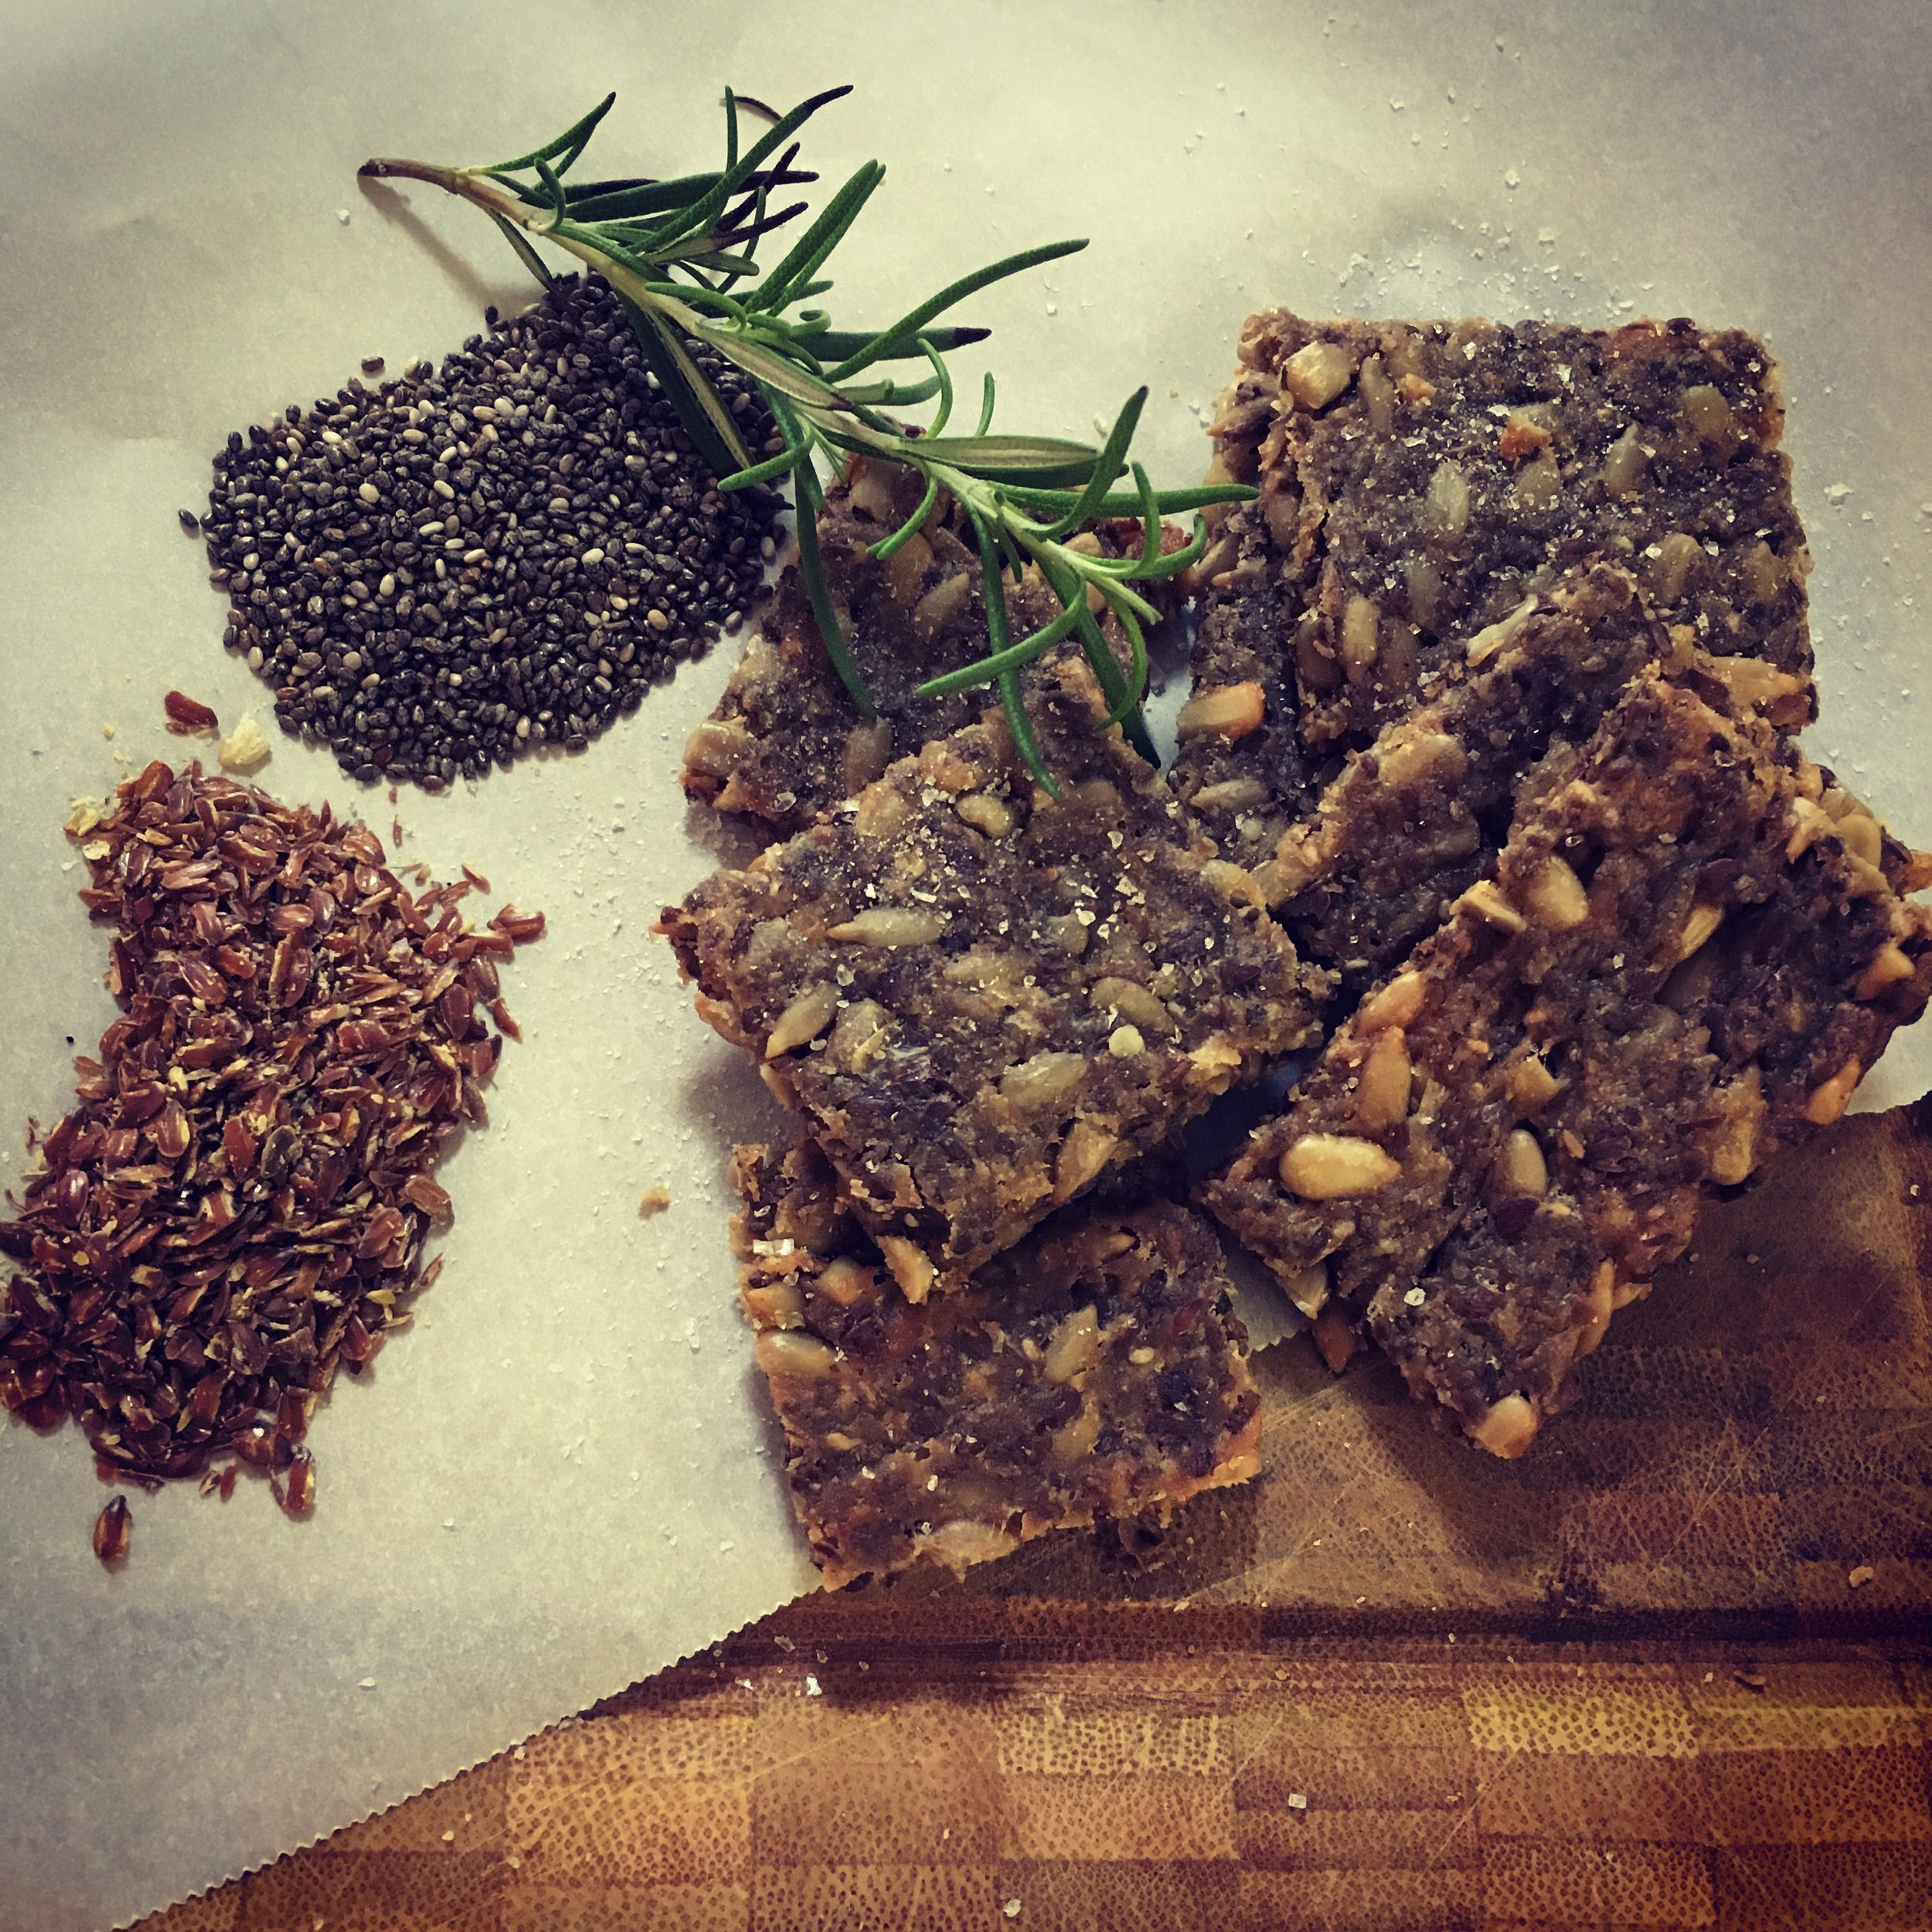 Seedy crackers with loads of goodness and nothing processed. Make your own instead of buying highly processed crackers. You will thank yourself.